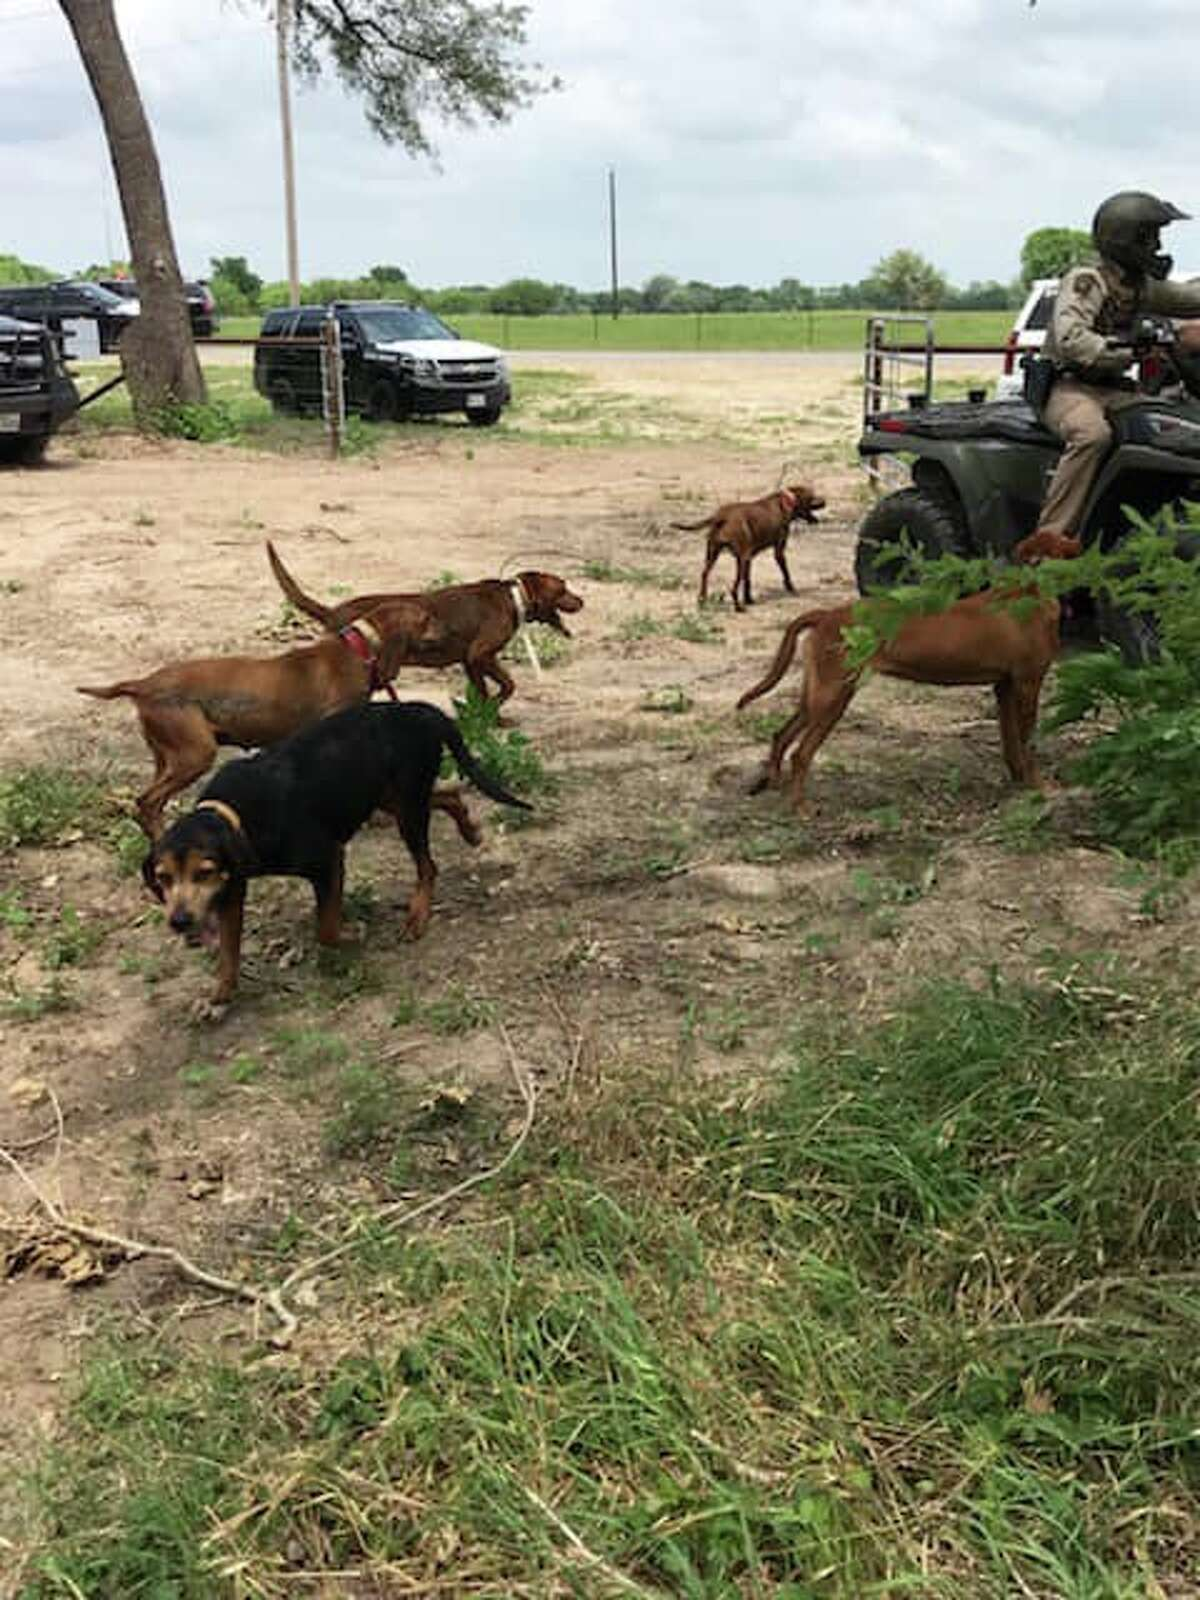 The Karnes County Sheriff's Office detained 150 people after busting up a rooster fighting operation on May 1, 2019.